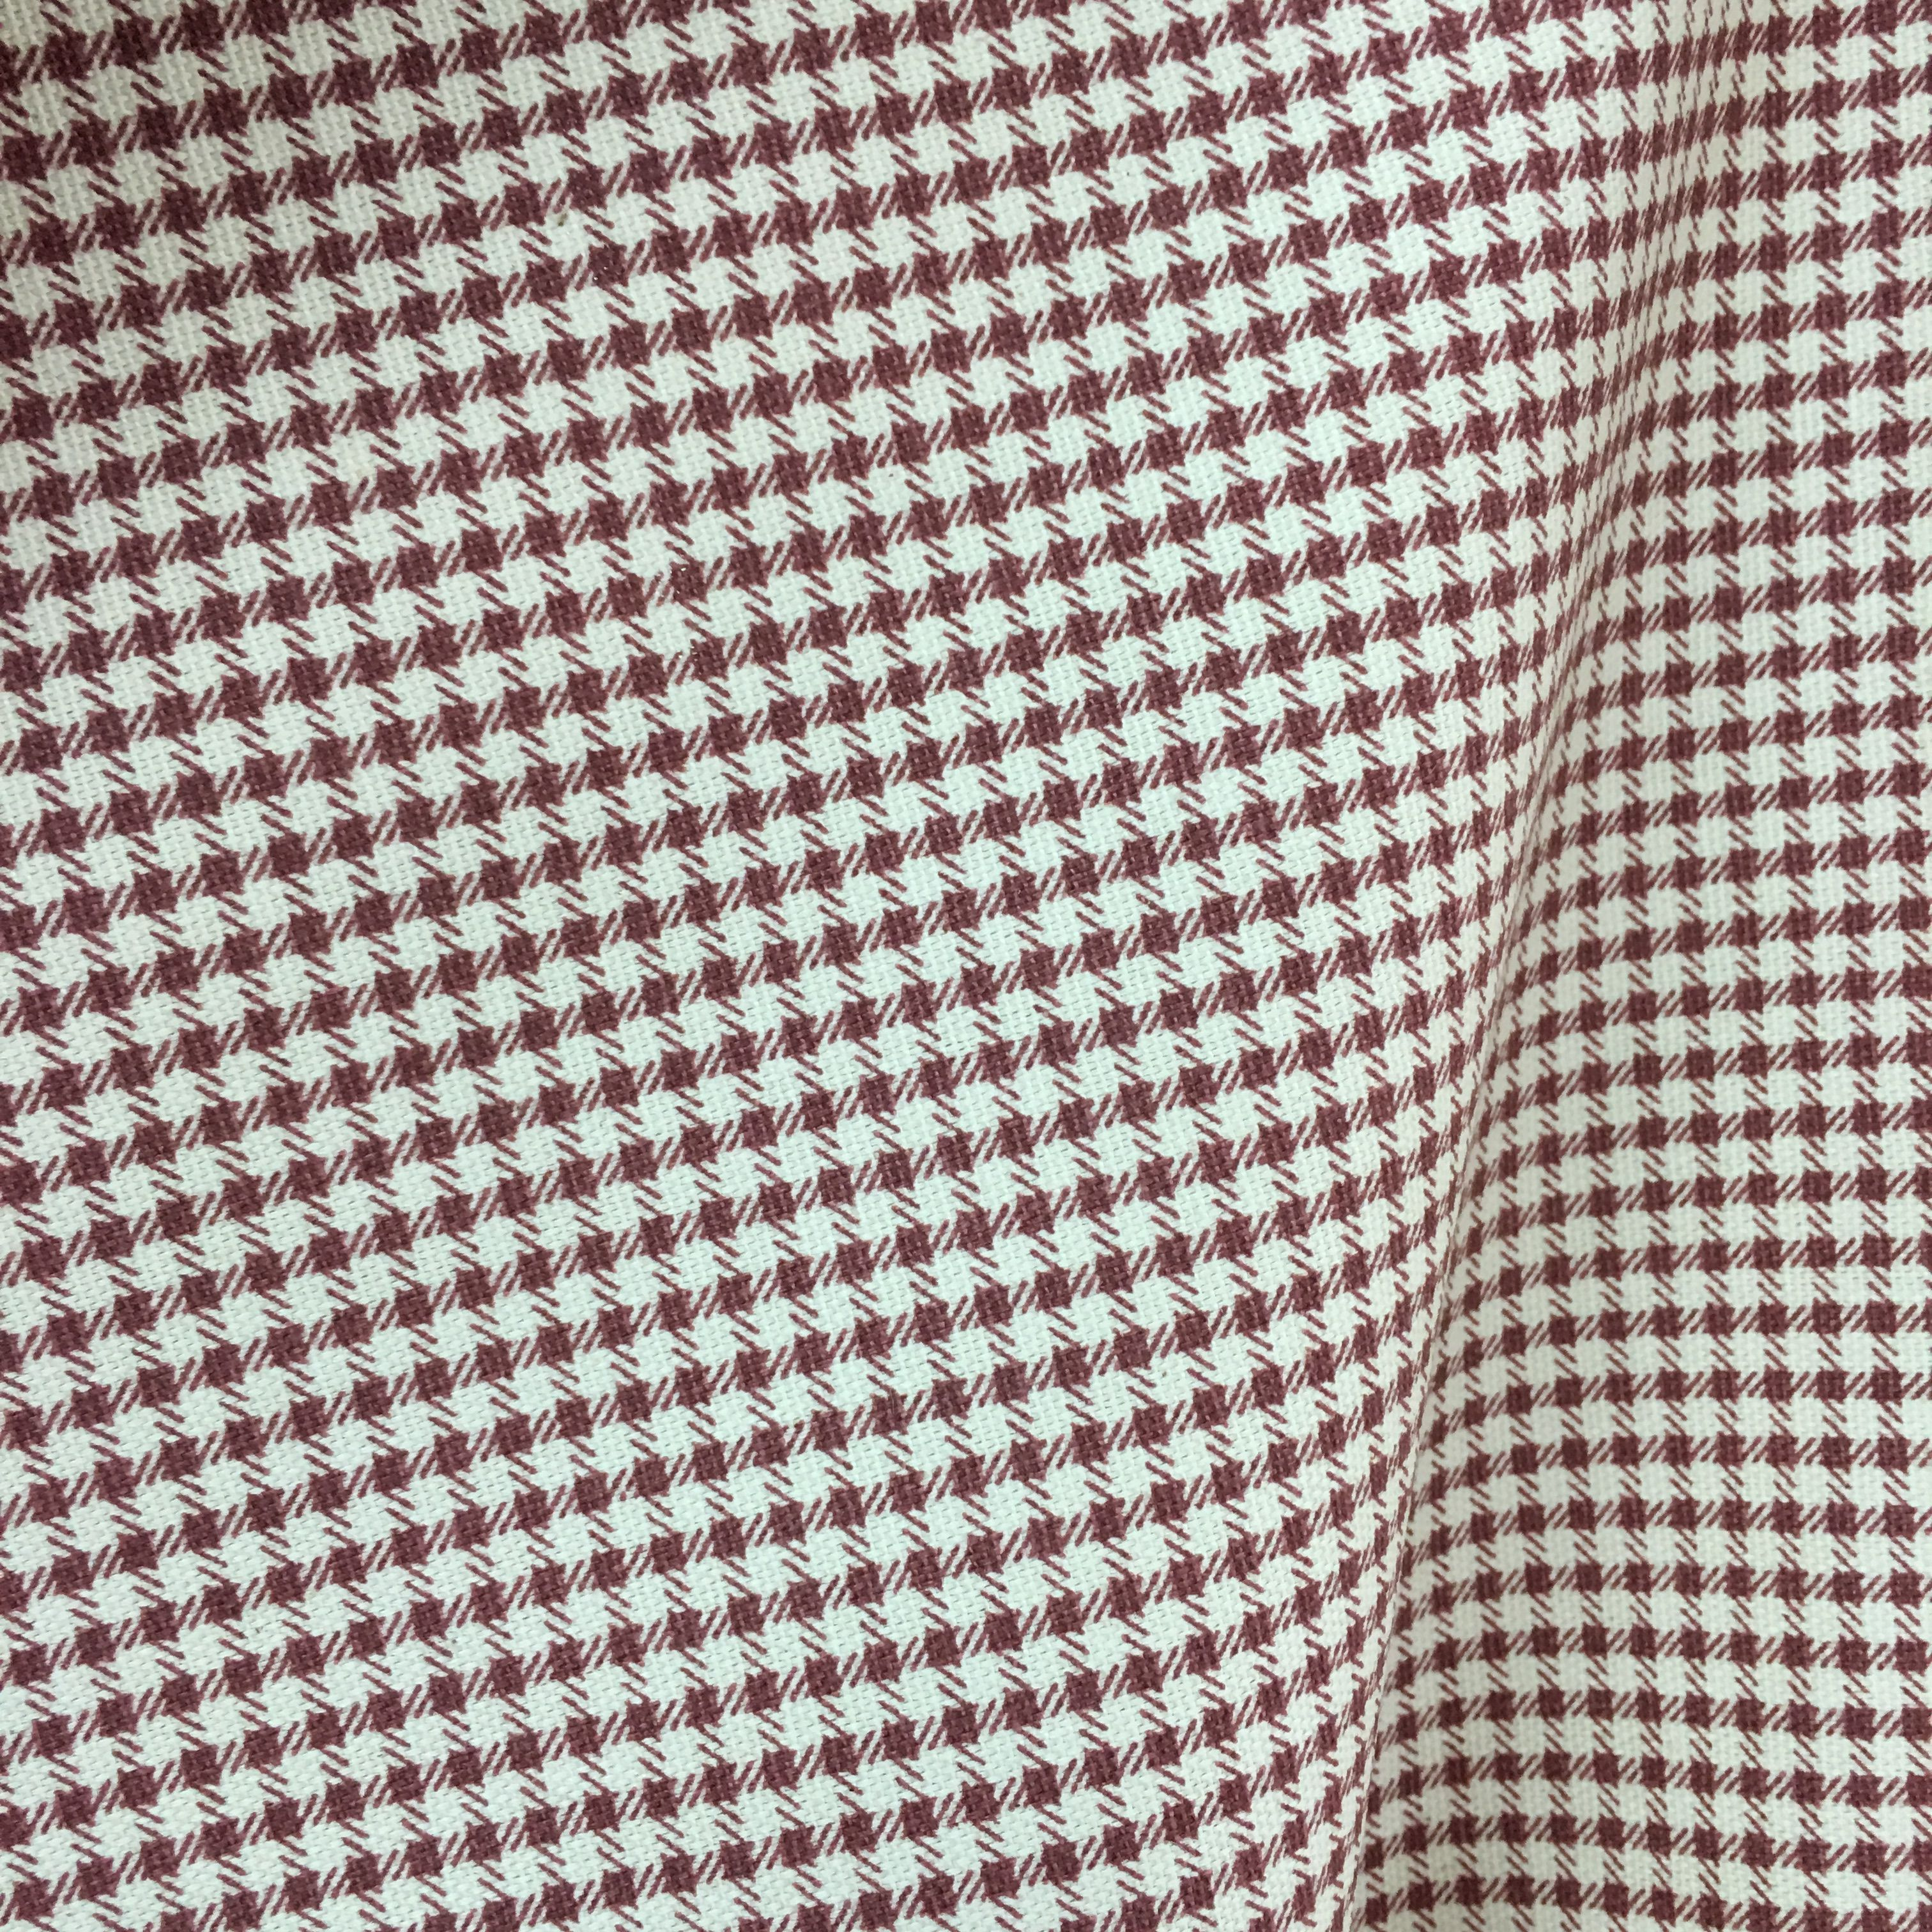 Coordinating Fabric From Kitchen Curtains For Living Room